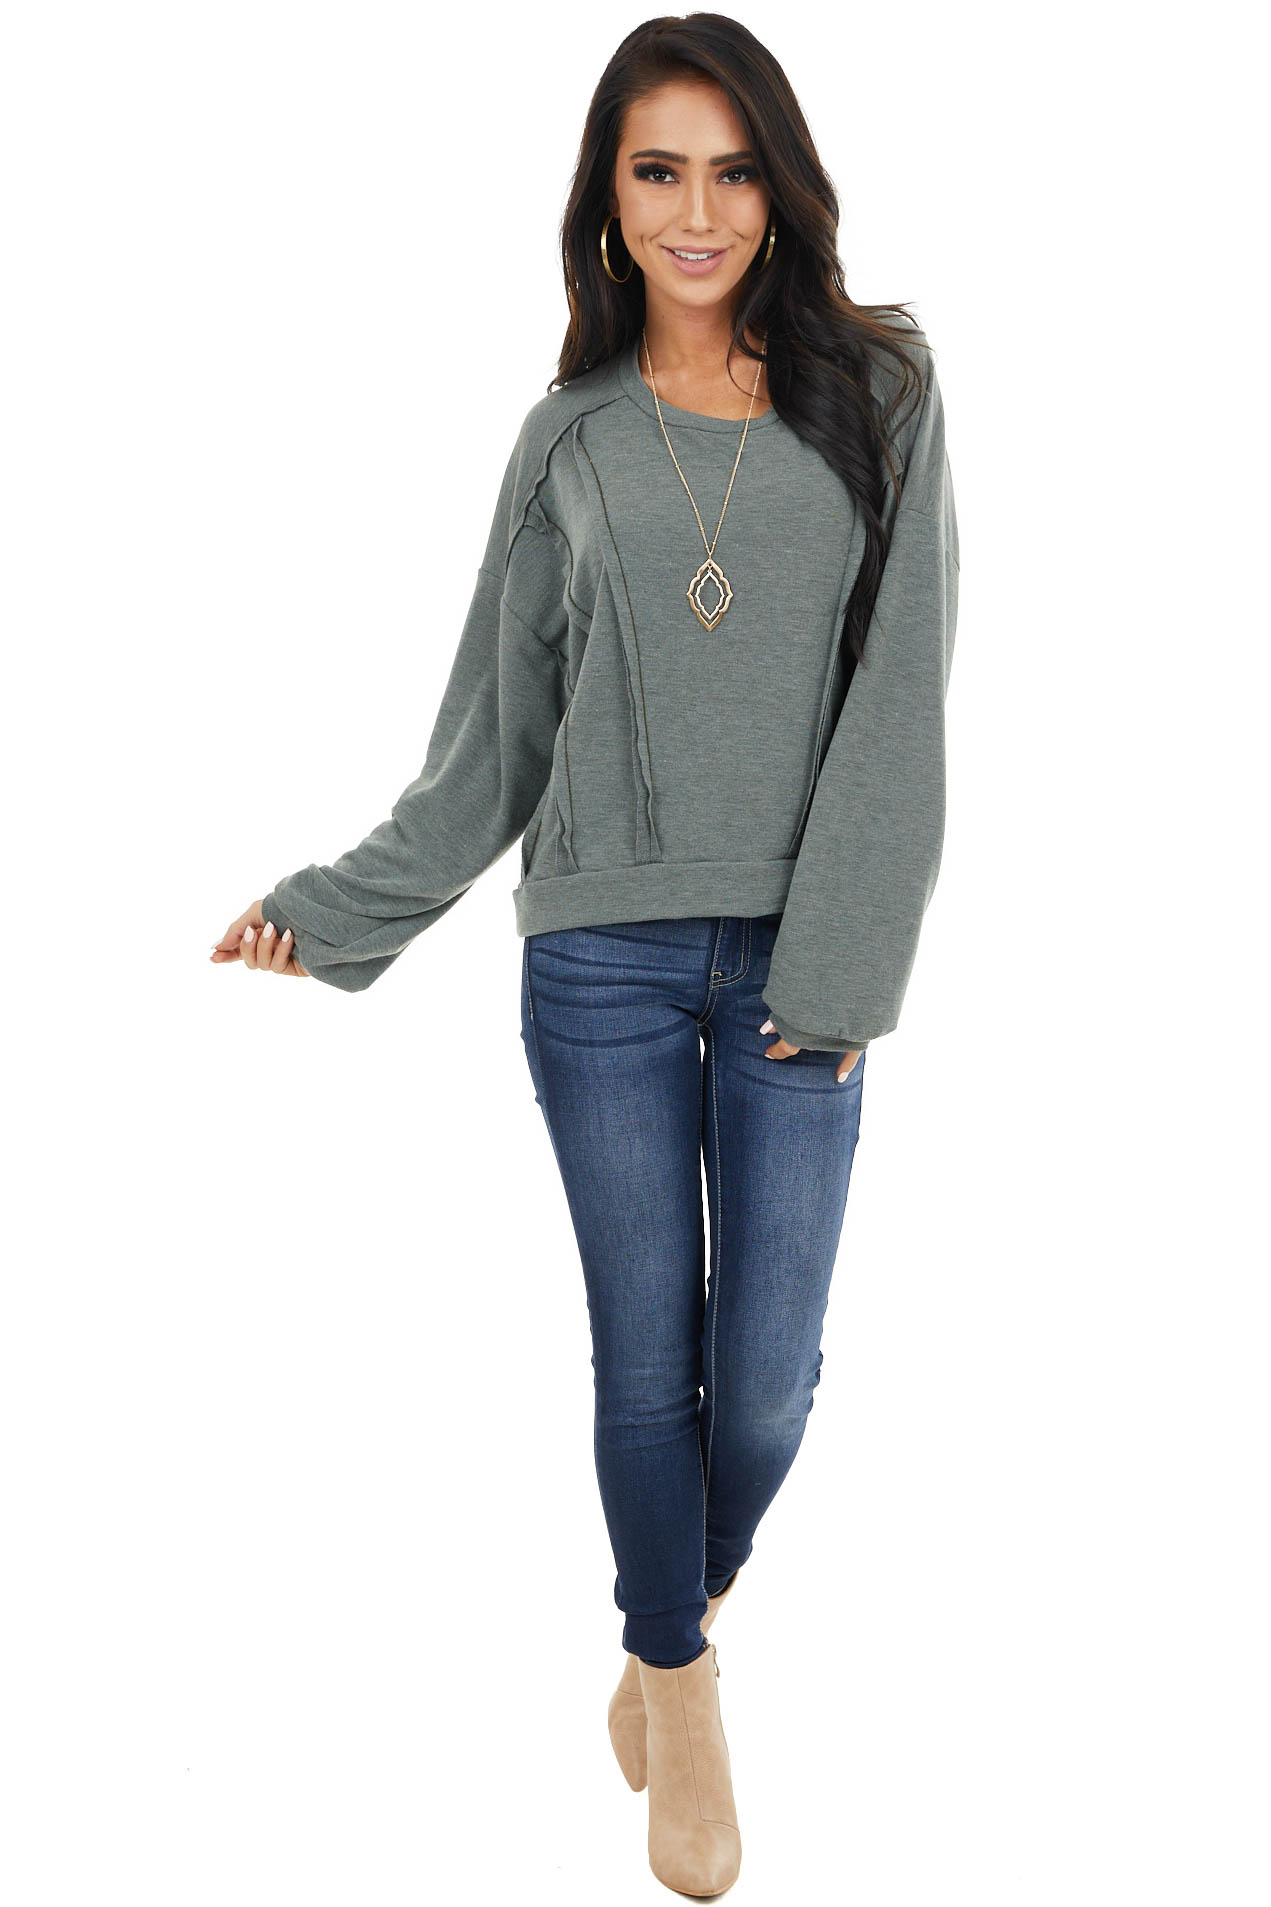 Faded Olive Stretchy Long Sleeve Top with Raw Edge Details